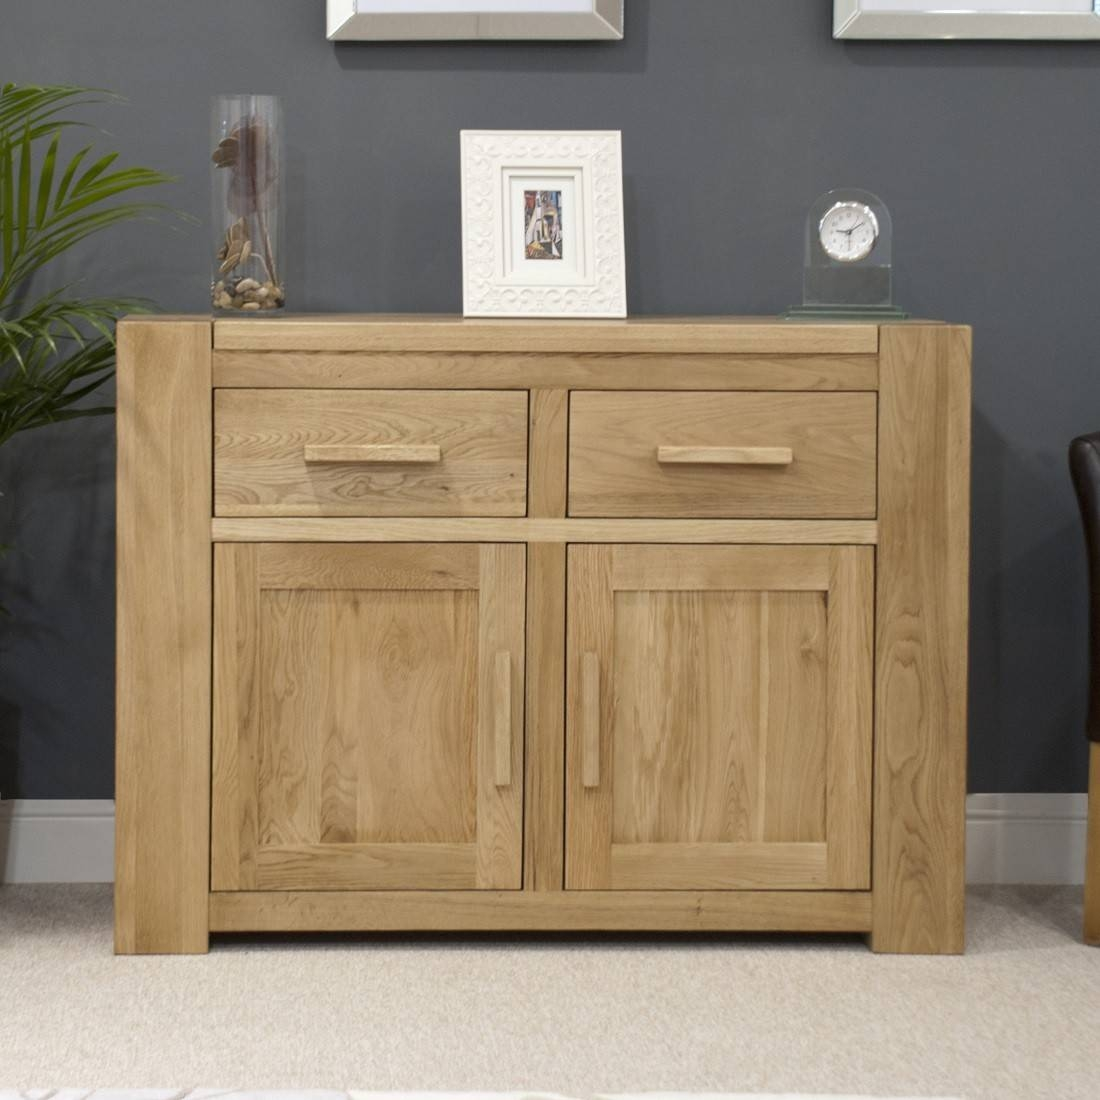 Oak Sideboards | Oak Furniture Uk throughout Real Wood Sideboards (Image 8 of 30)